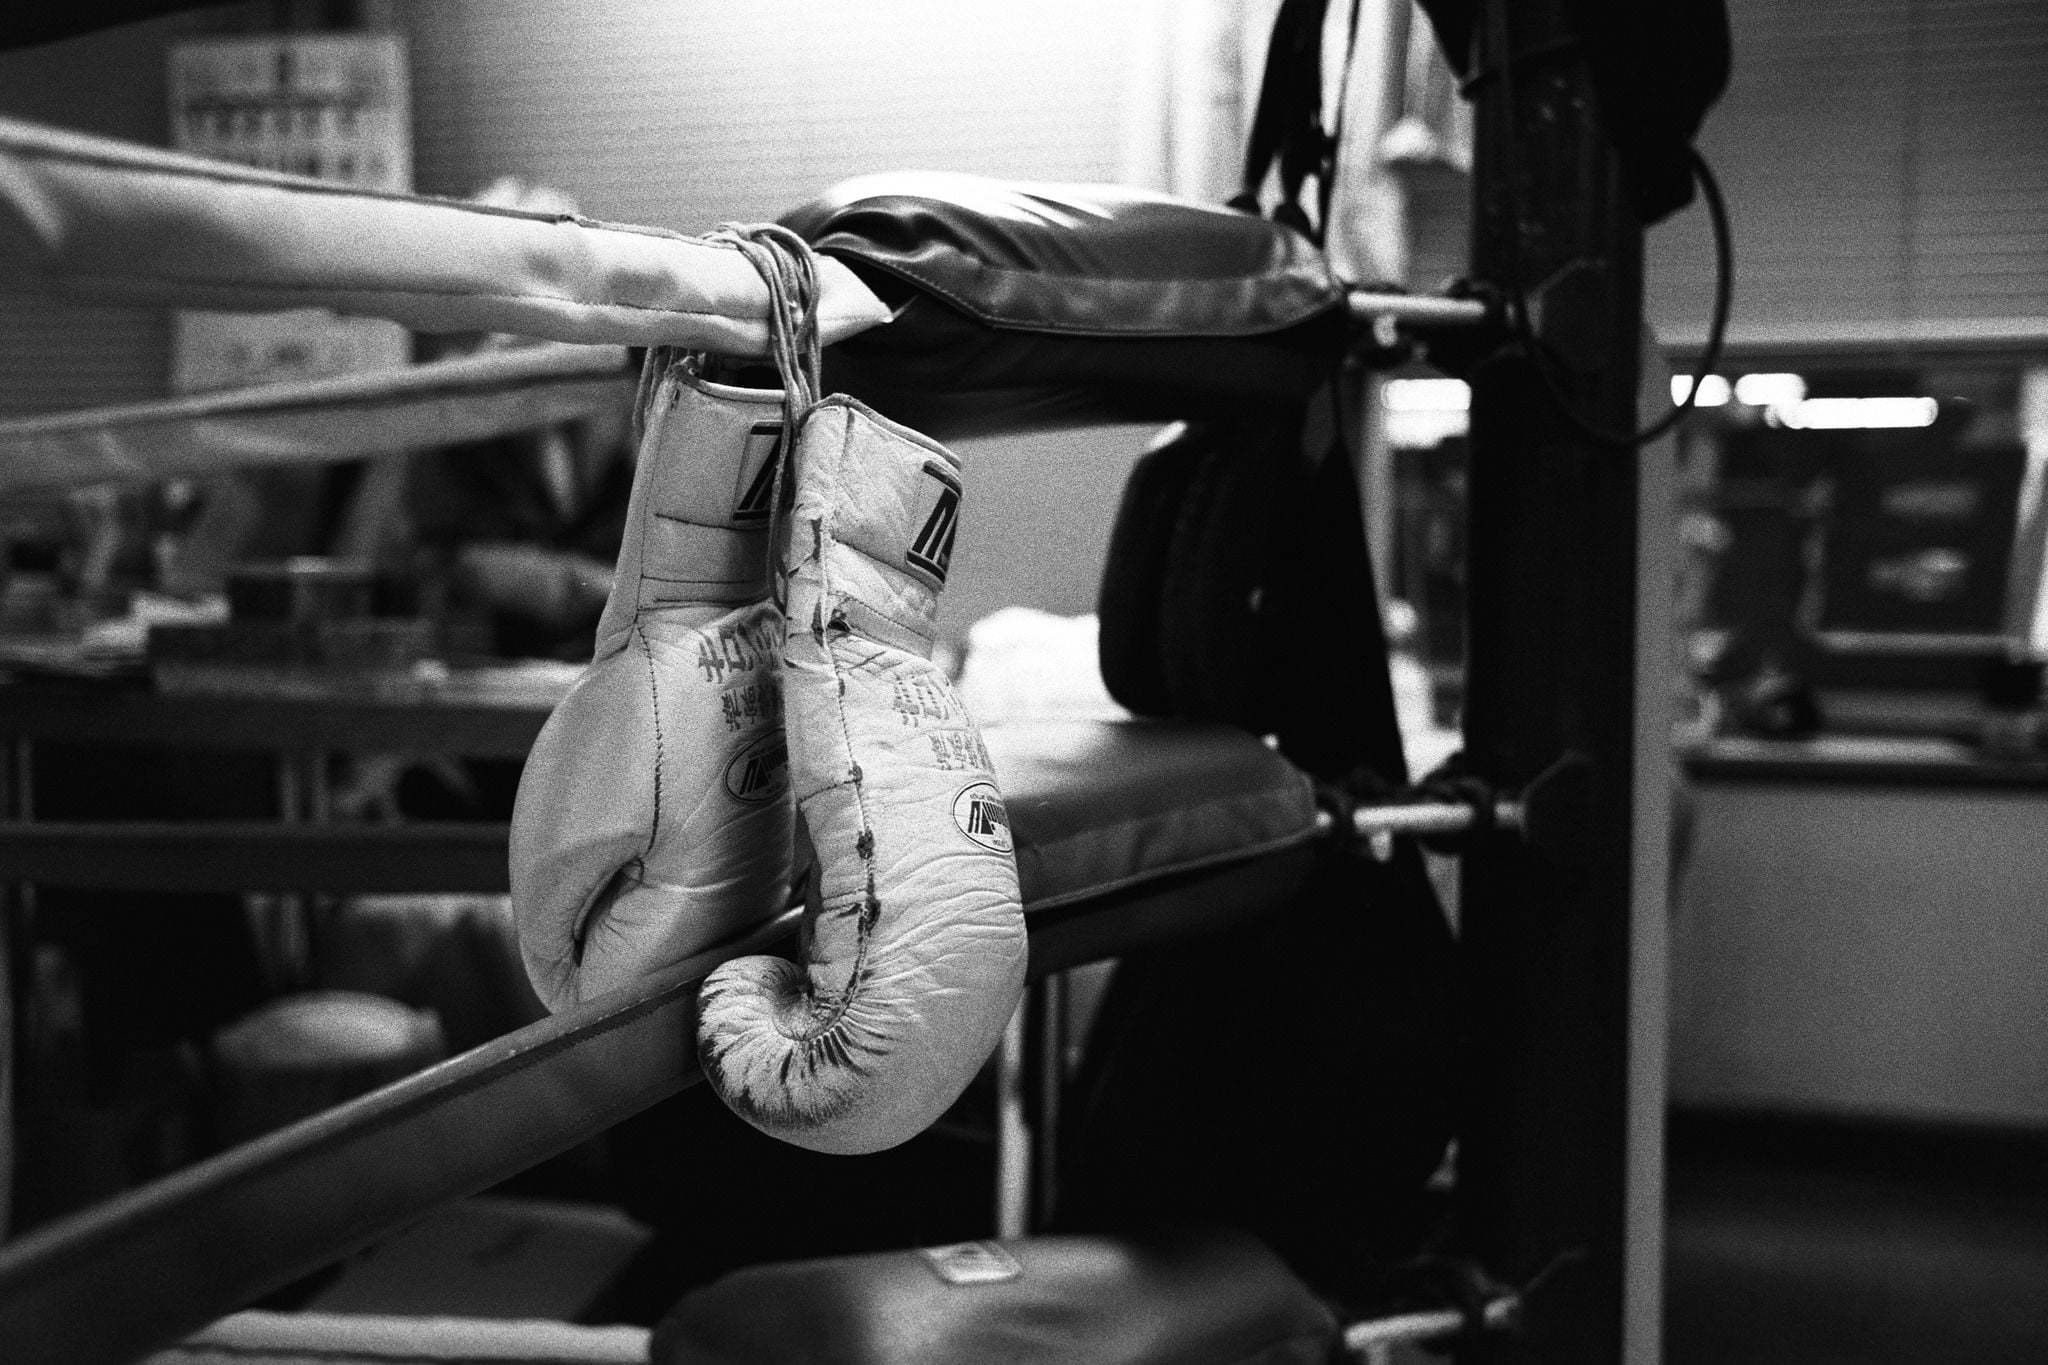 Boxing Gloves High Quality Wallpapers